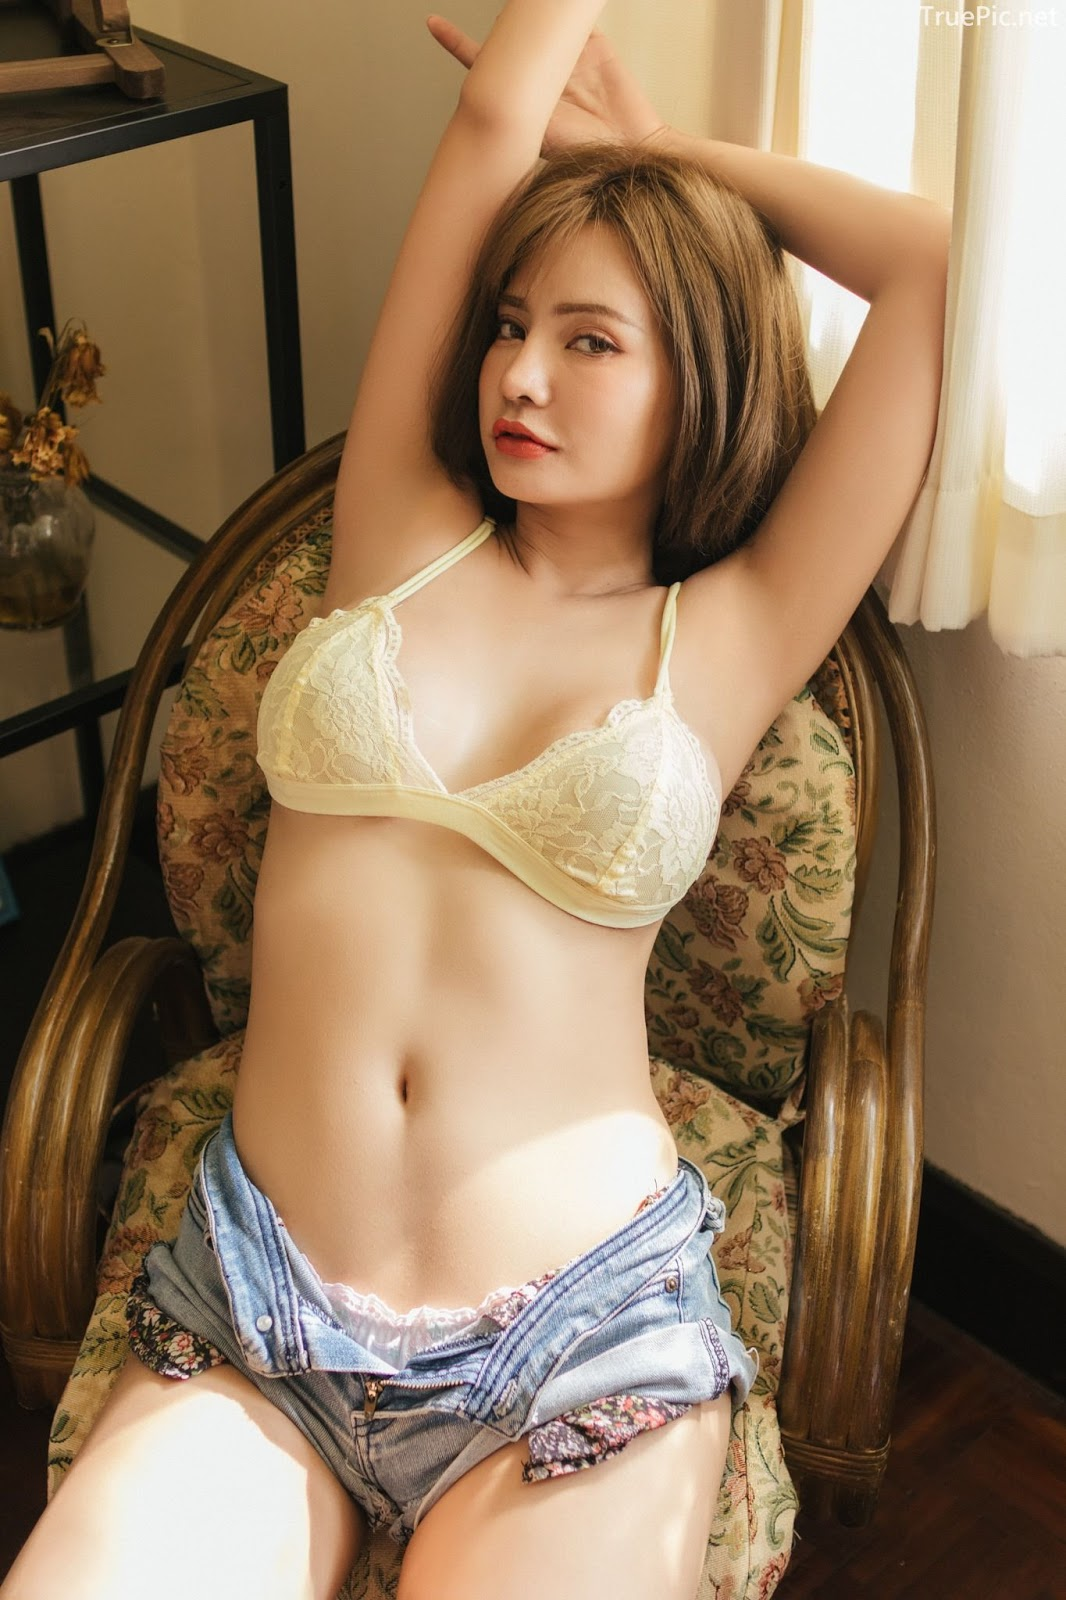 Sutasinee Siriruke Thailand sexy model with photo album Stay with me - Picture 6